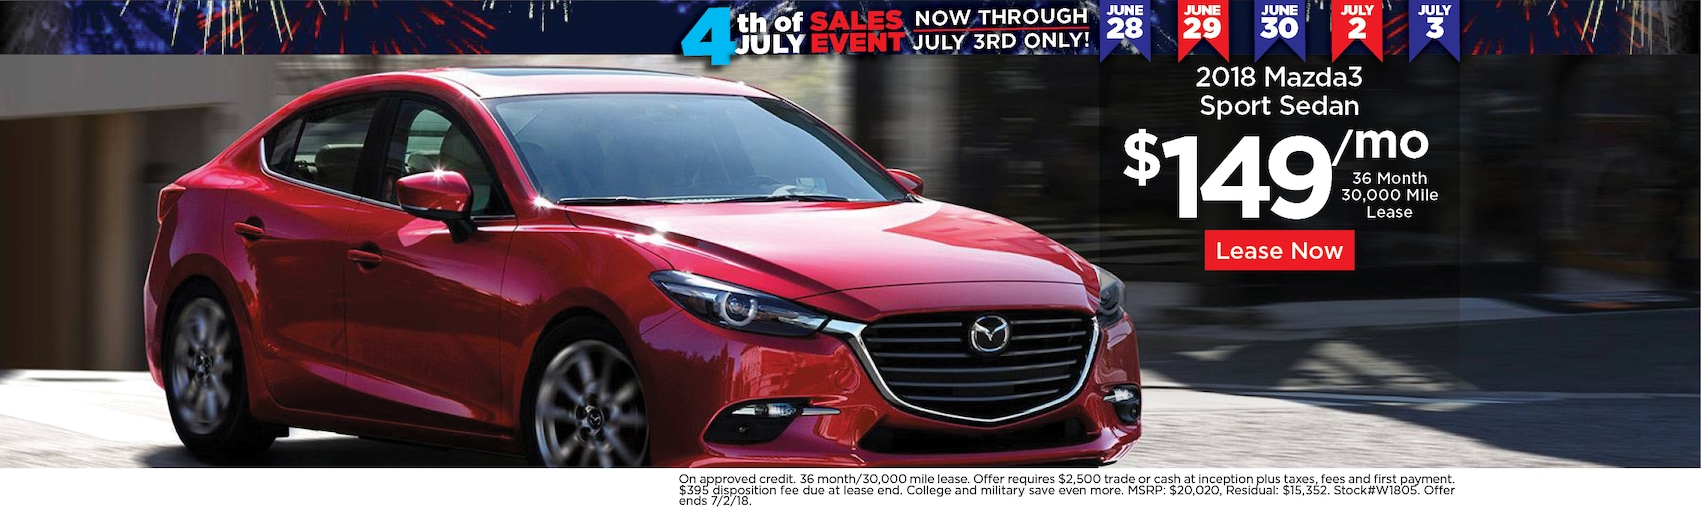 crossovers skechers low in offers cars codes rahu on find apr deals select cash vs great lease financing back like mazda area local off honda accord side and coupon your suvs